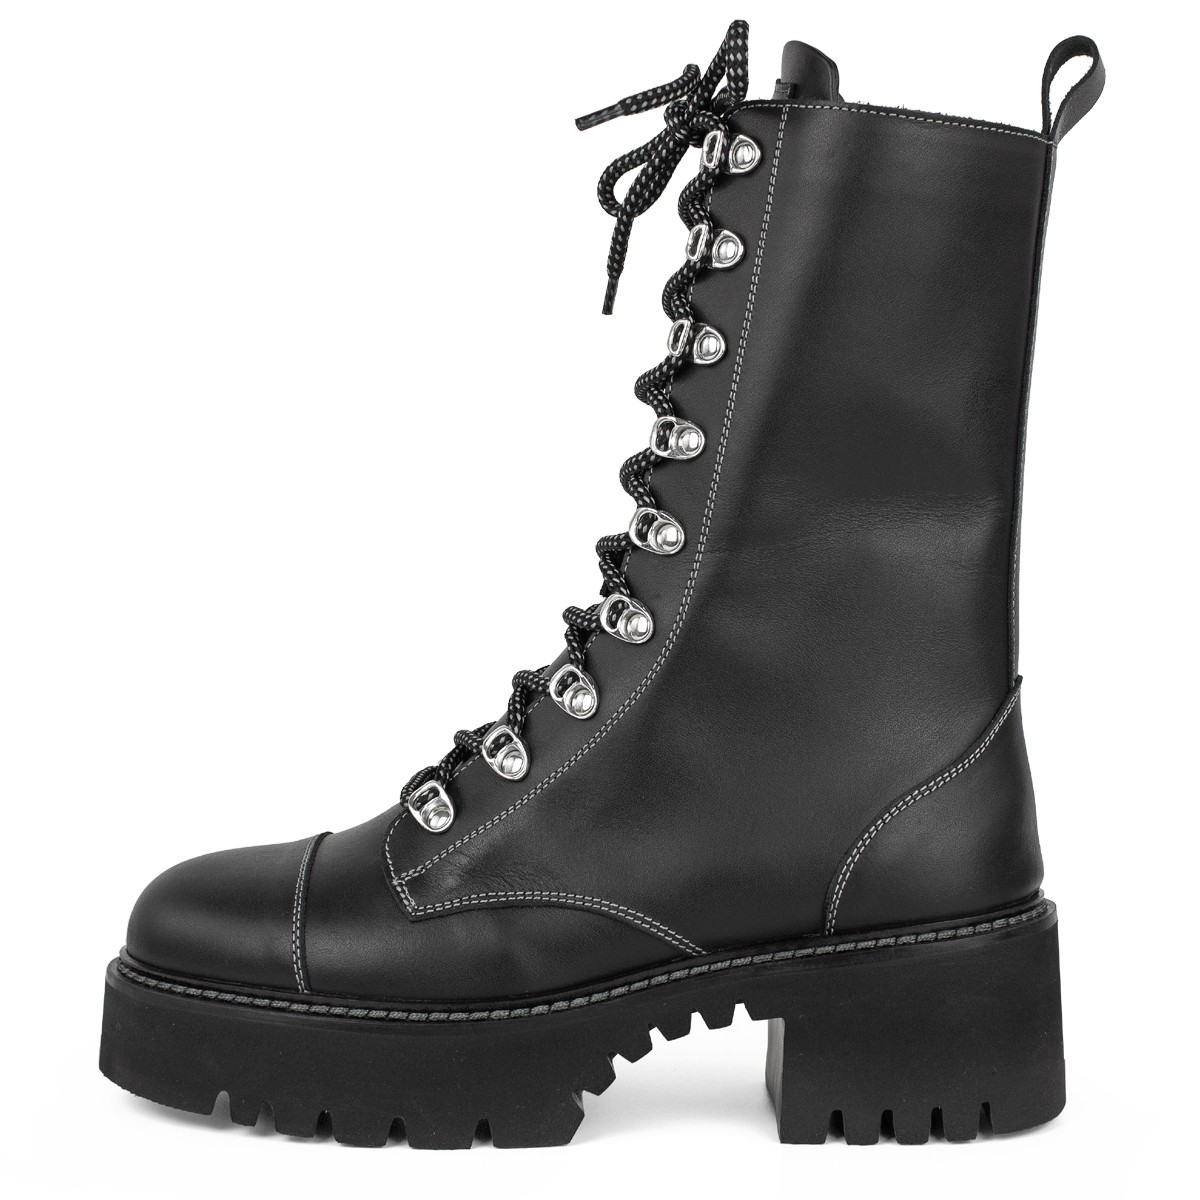 BLACK COMBAT ANKLE BOOTS ON LOW HEEL